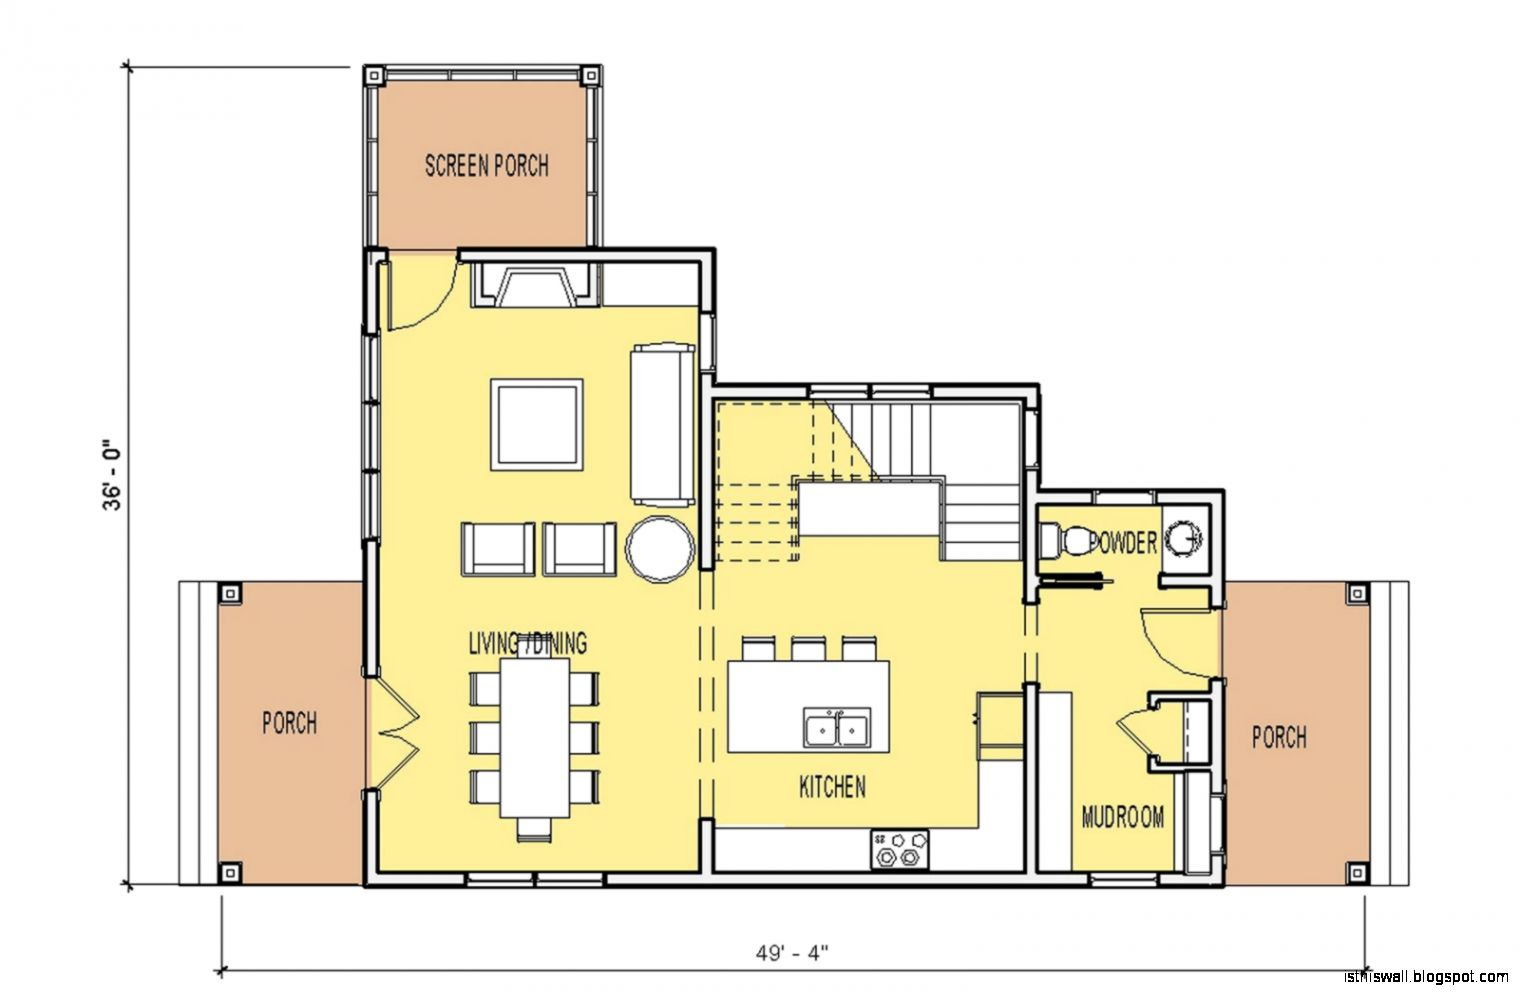 Unique house plans plan 034h 0121 find unique house for Small home house plans